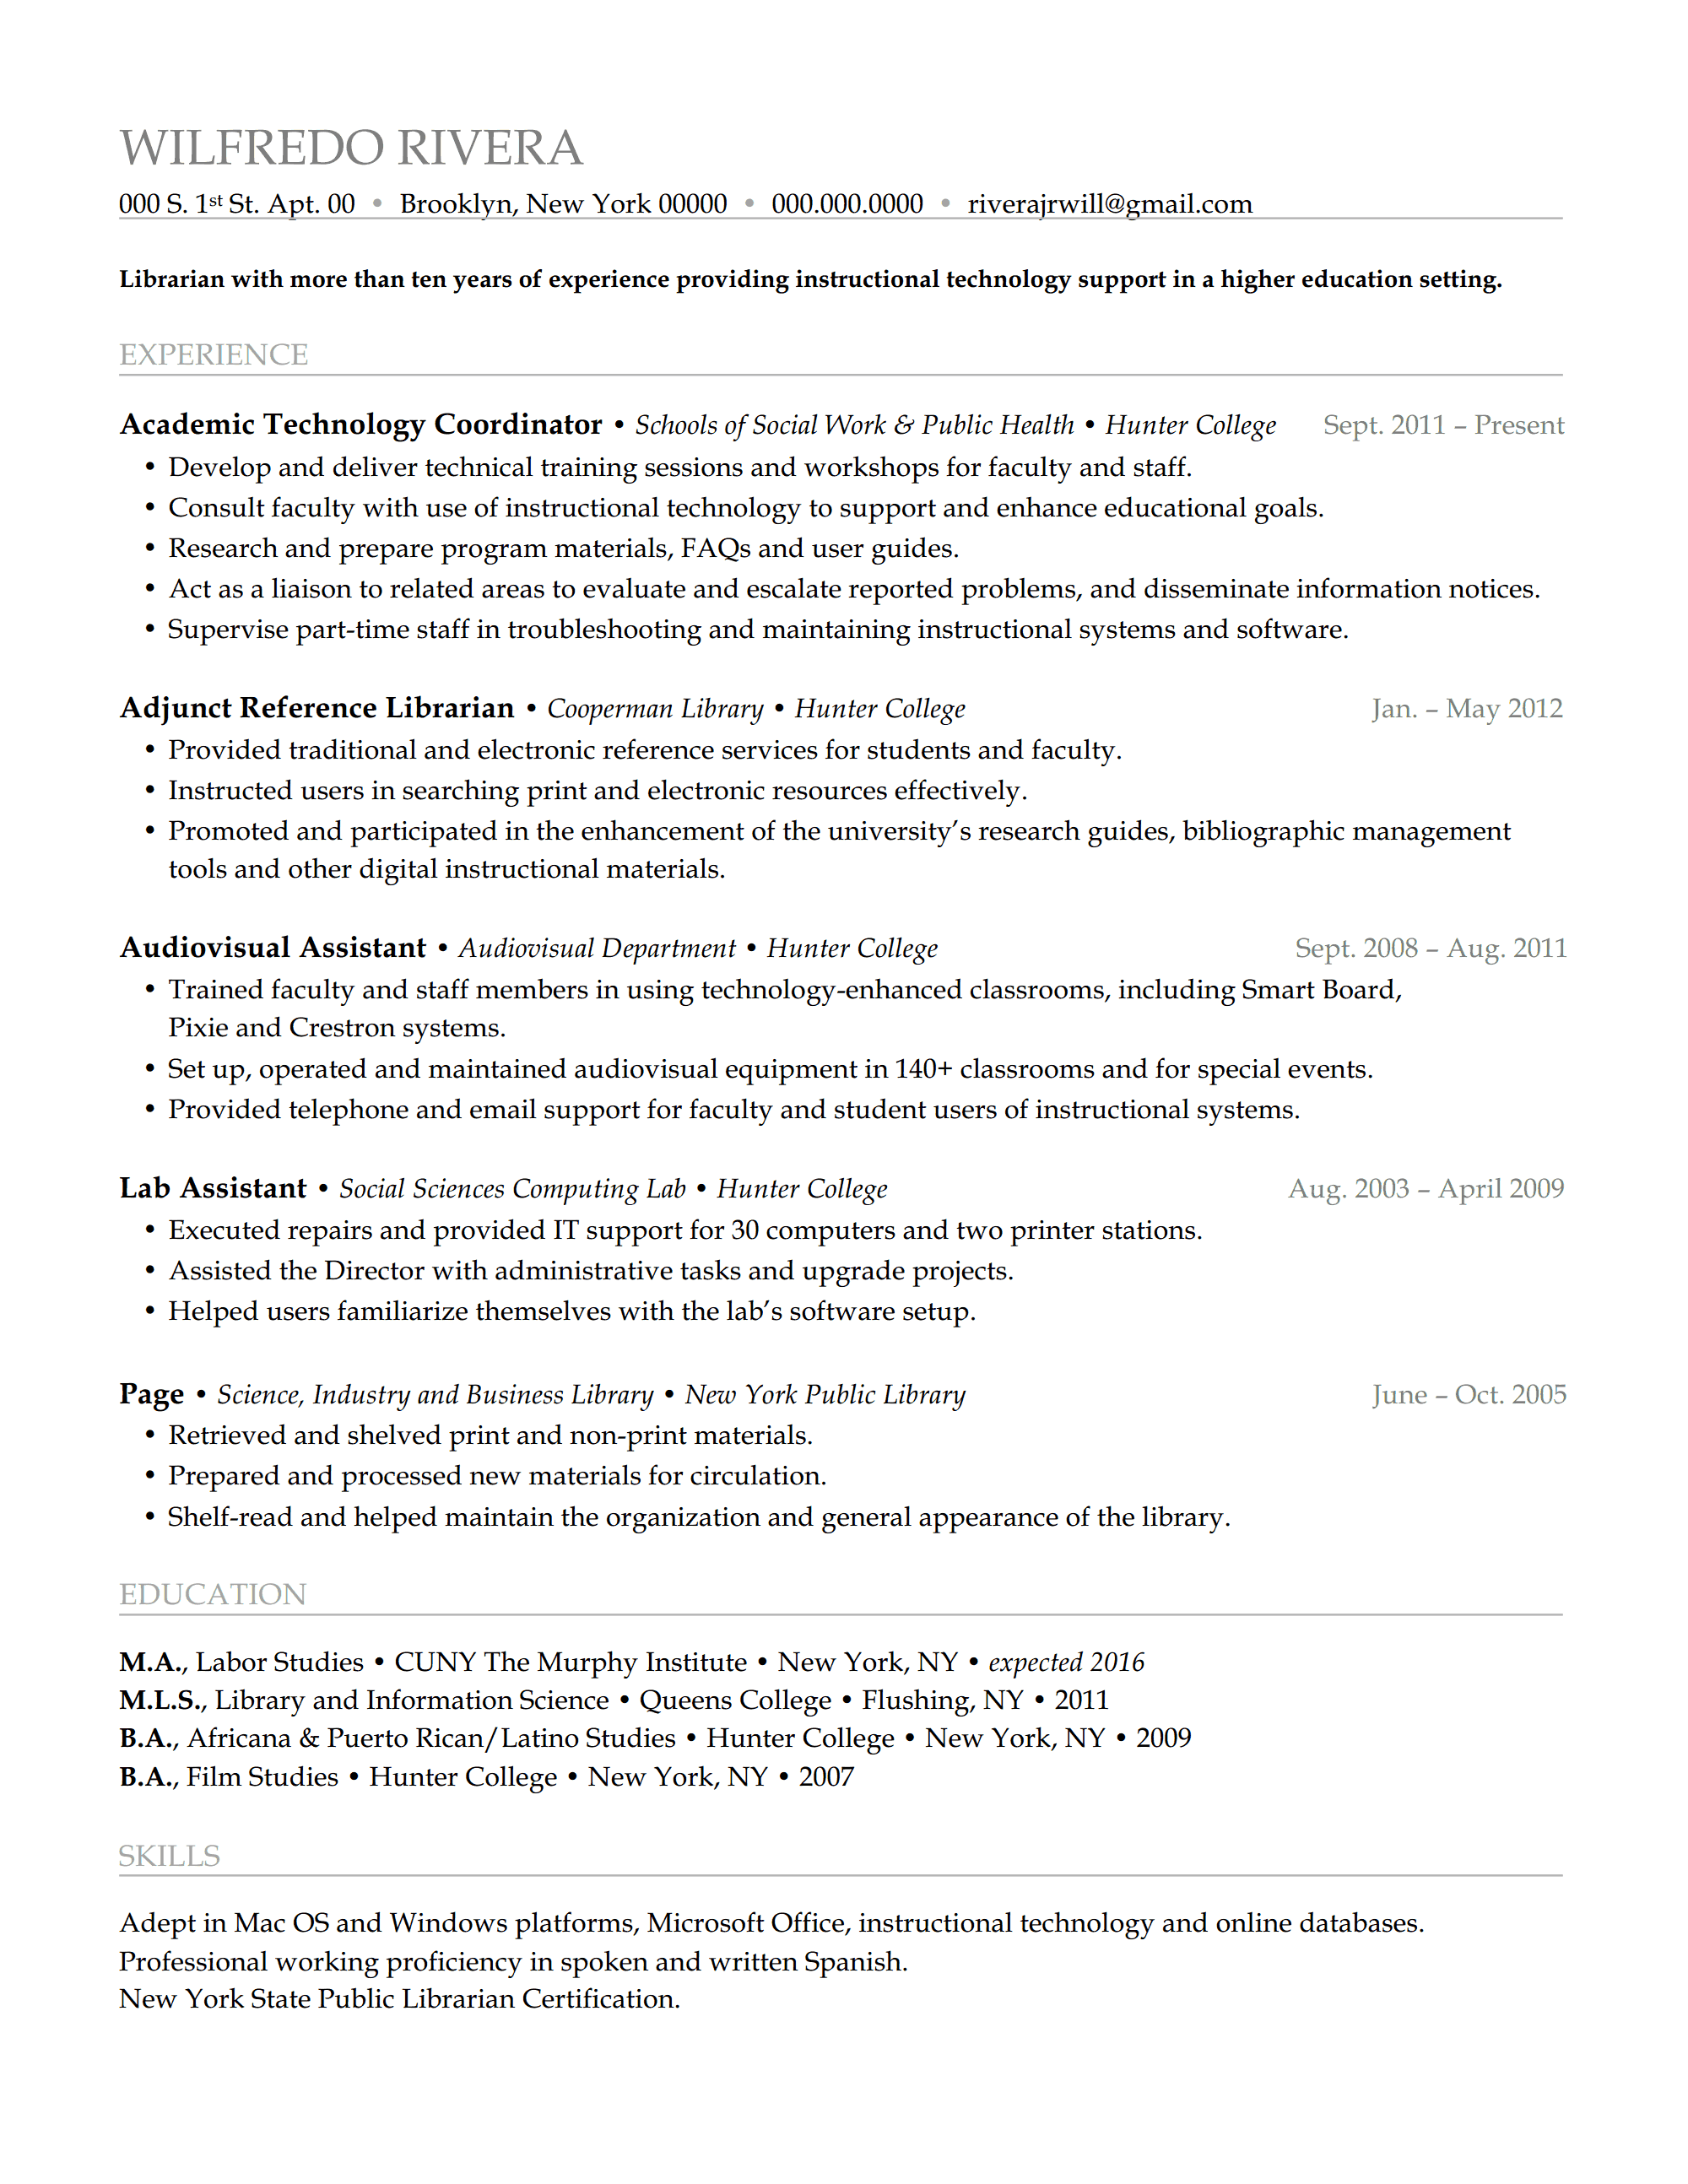 resume review hiring librarians page 7